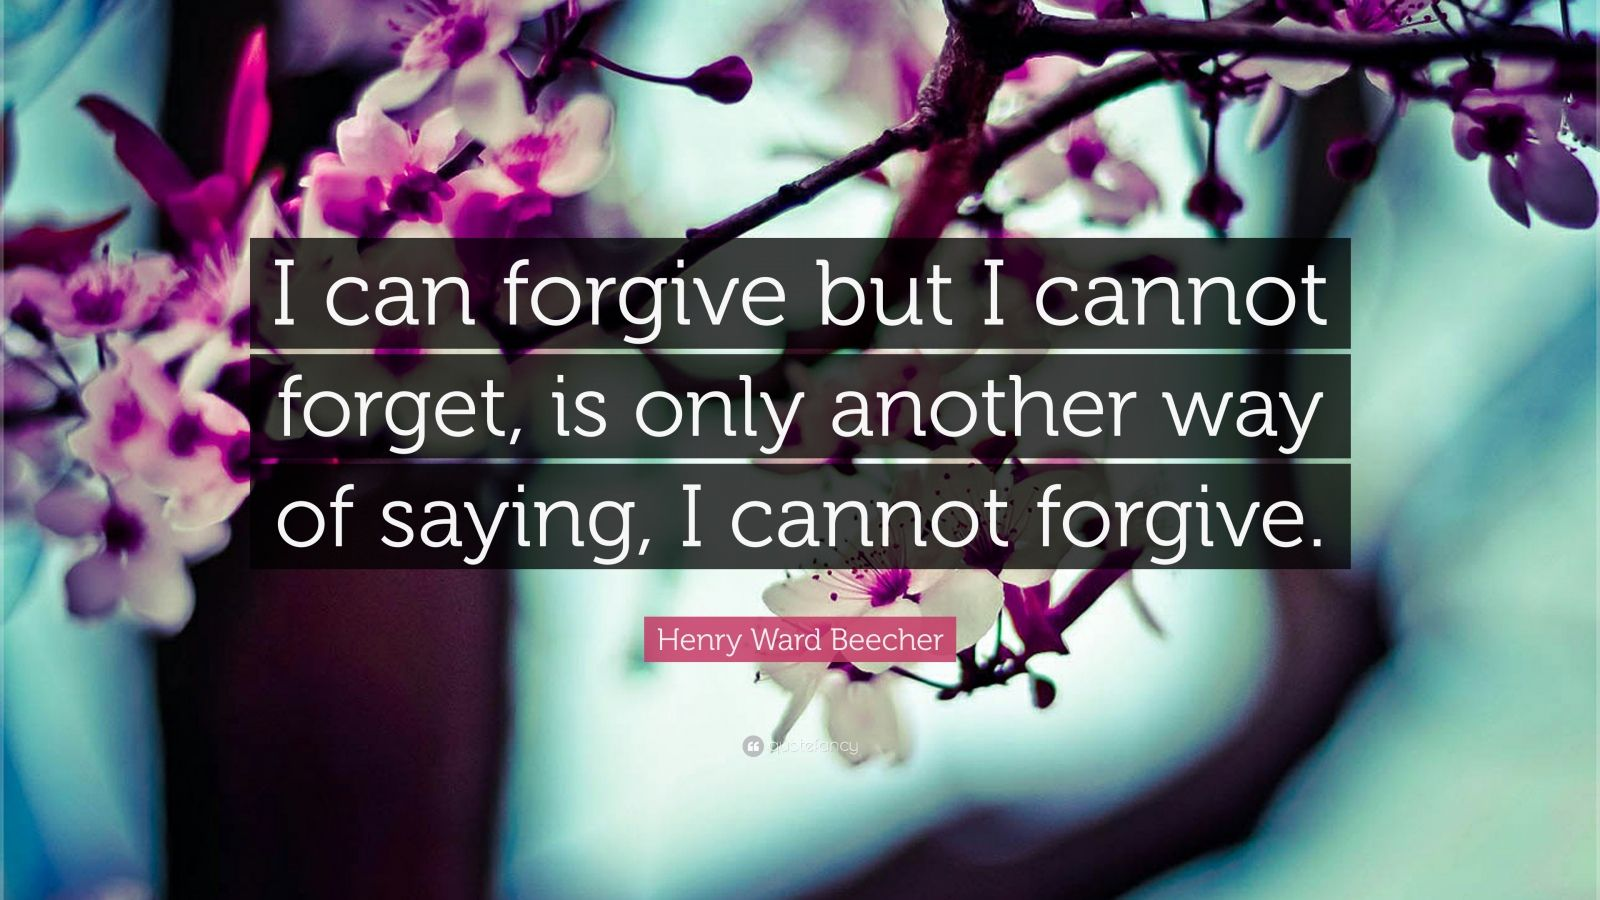 """Henry Ward Beecher Quote: """"I can forgive but I cannot forget, is only another way of saying, I cannot forgive."""""""